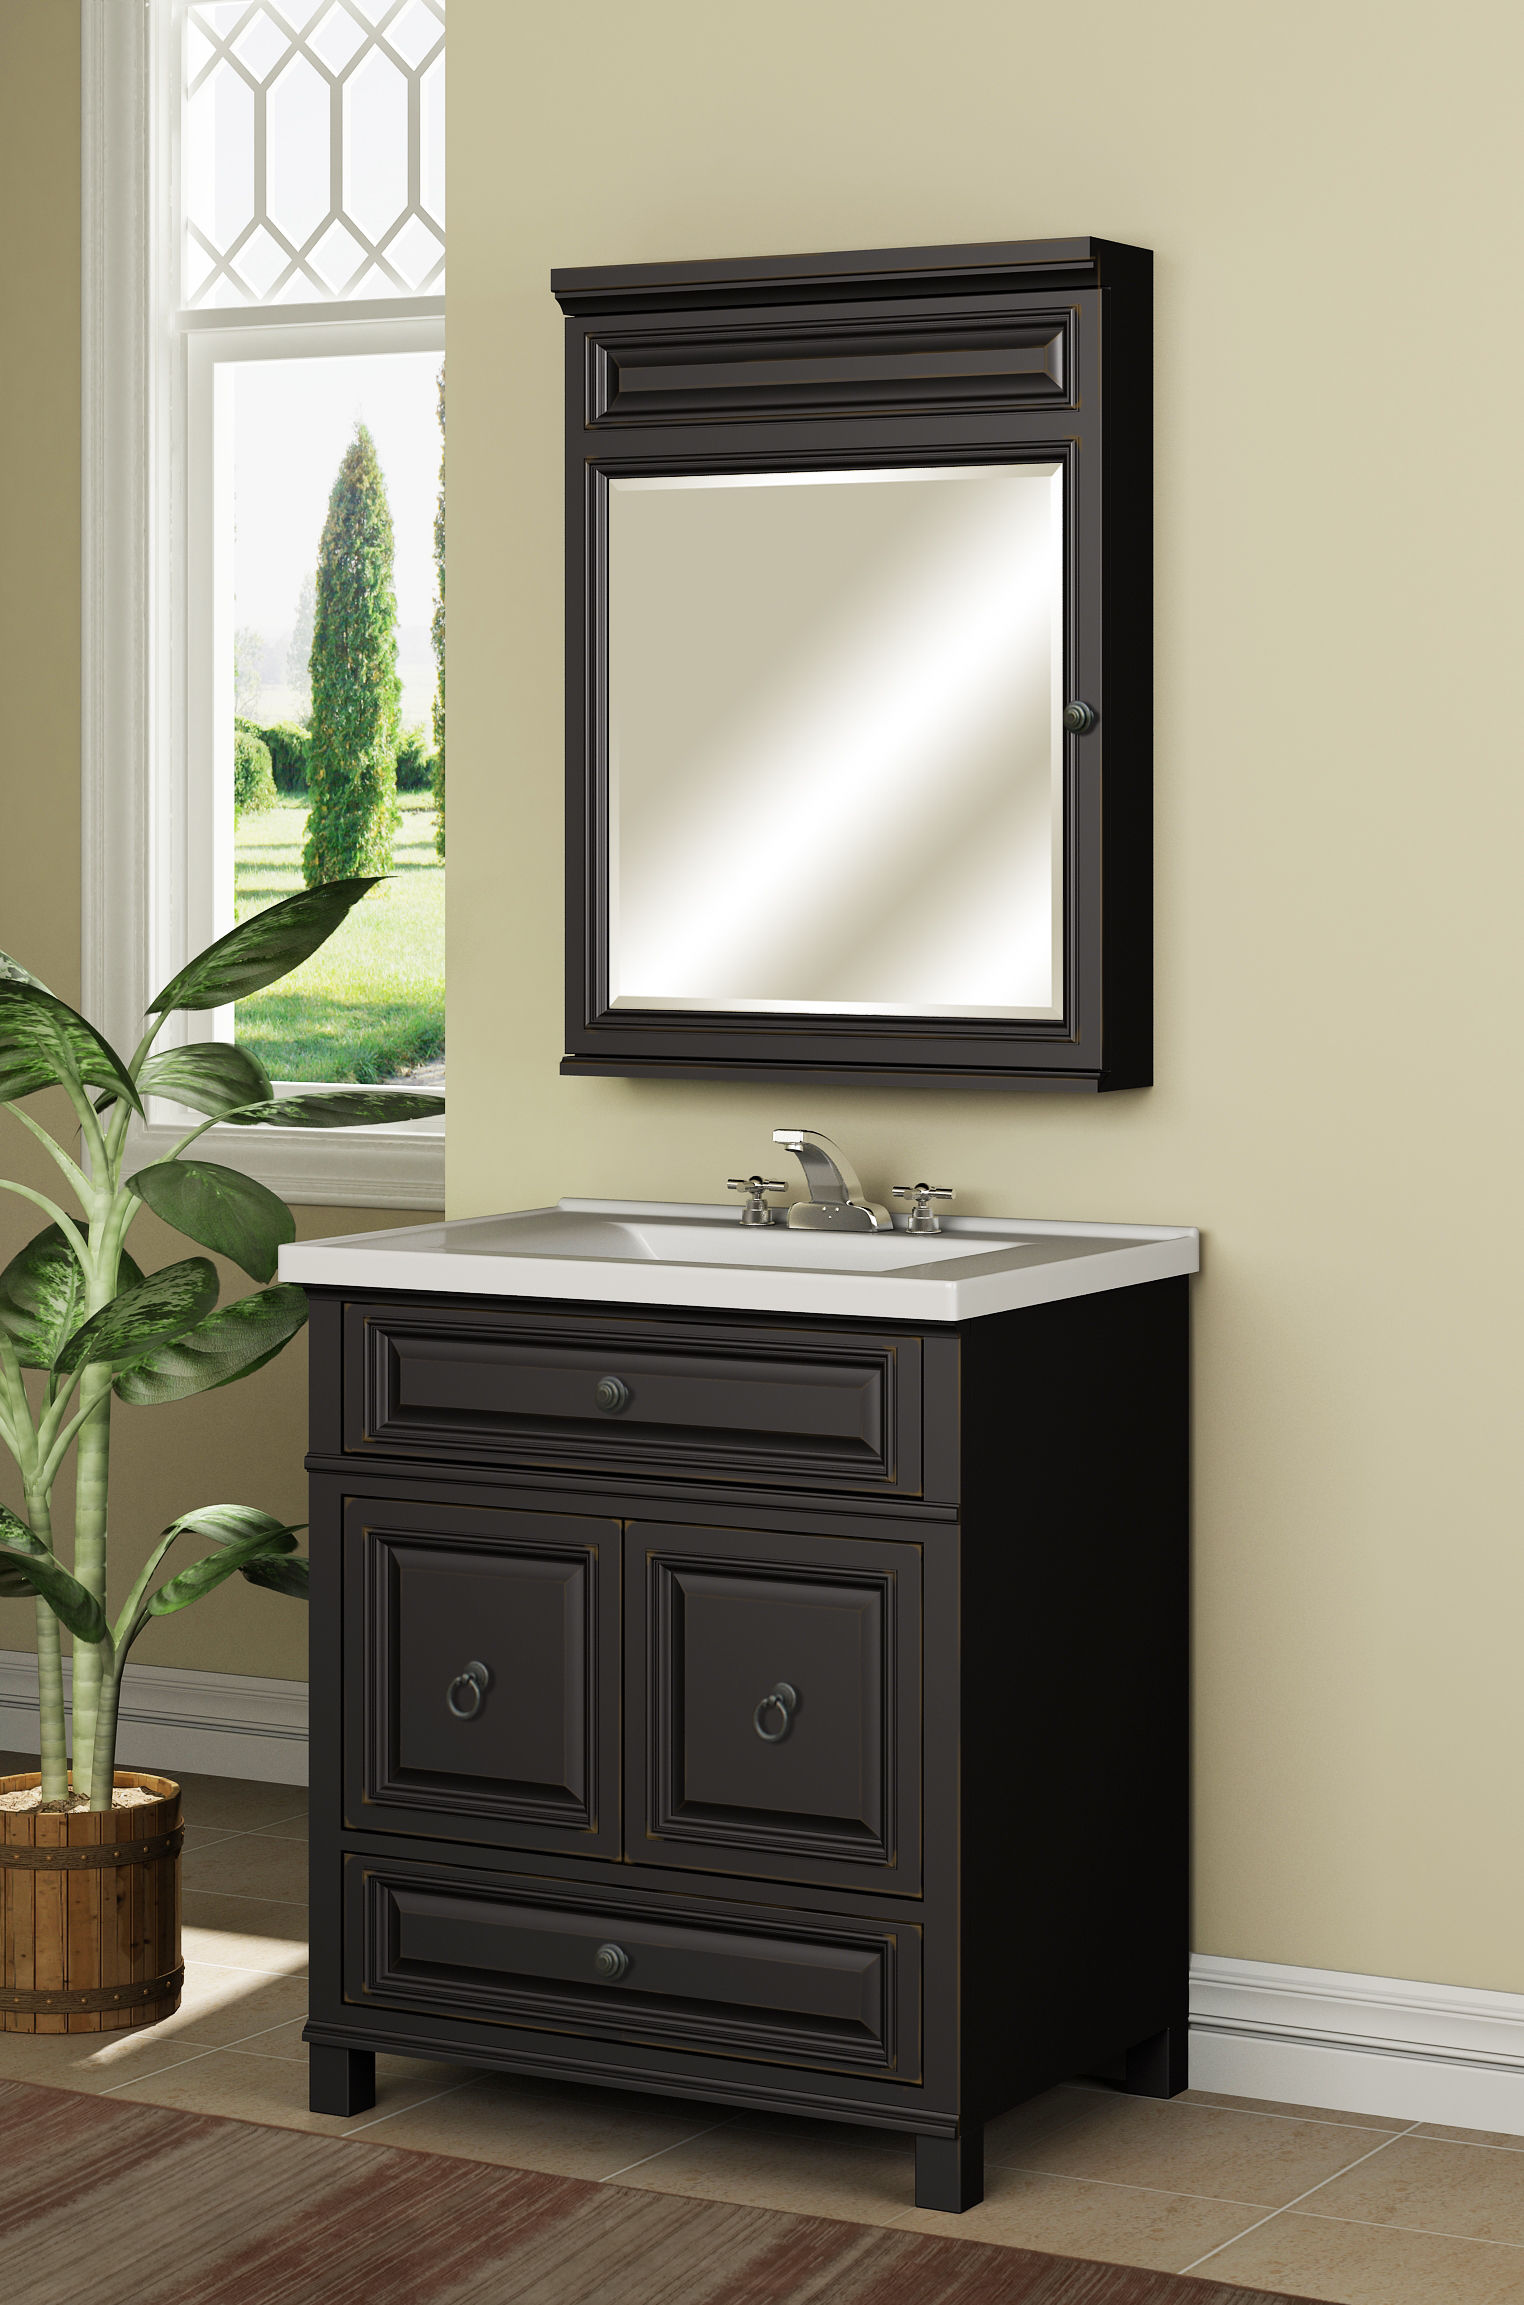 sale own marble from about house bellacor comfortable for on superb style vanity annabeth bathroom cultured in plan with home selections your white unique regarding vanities top